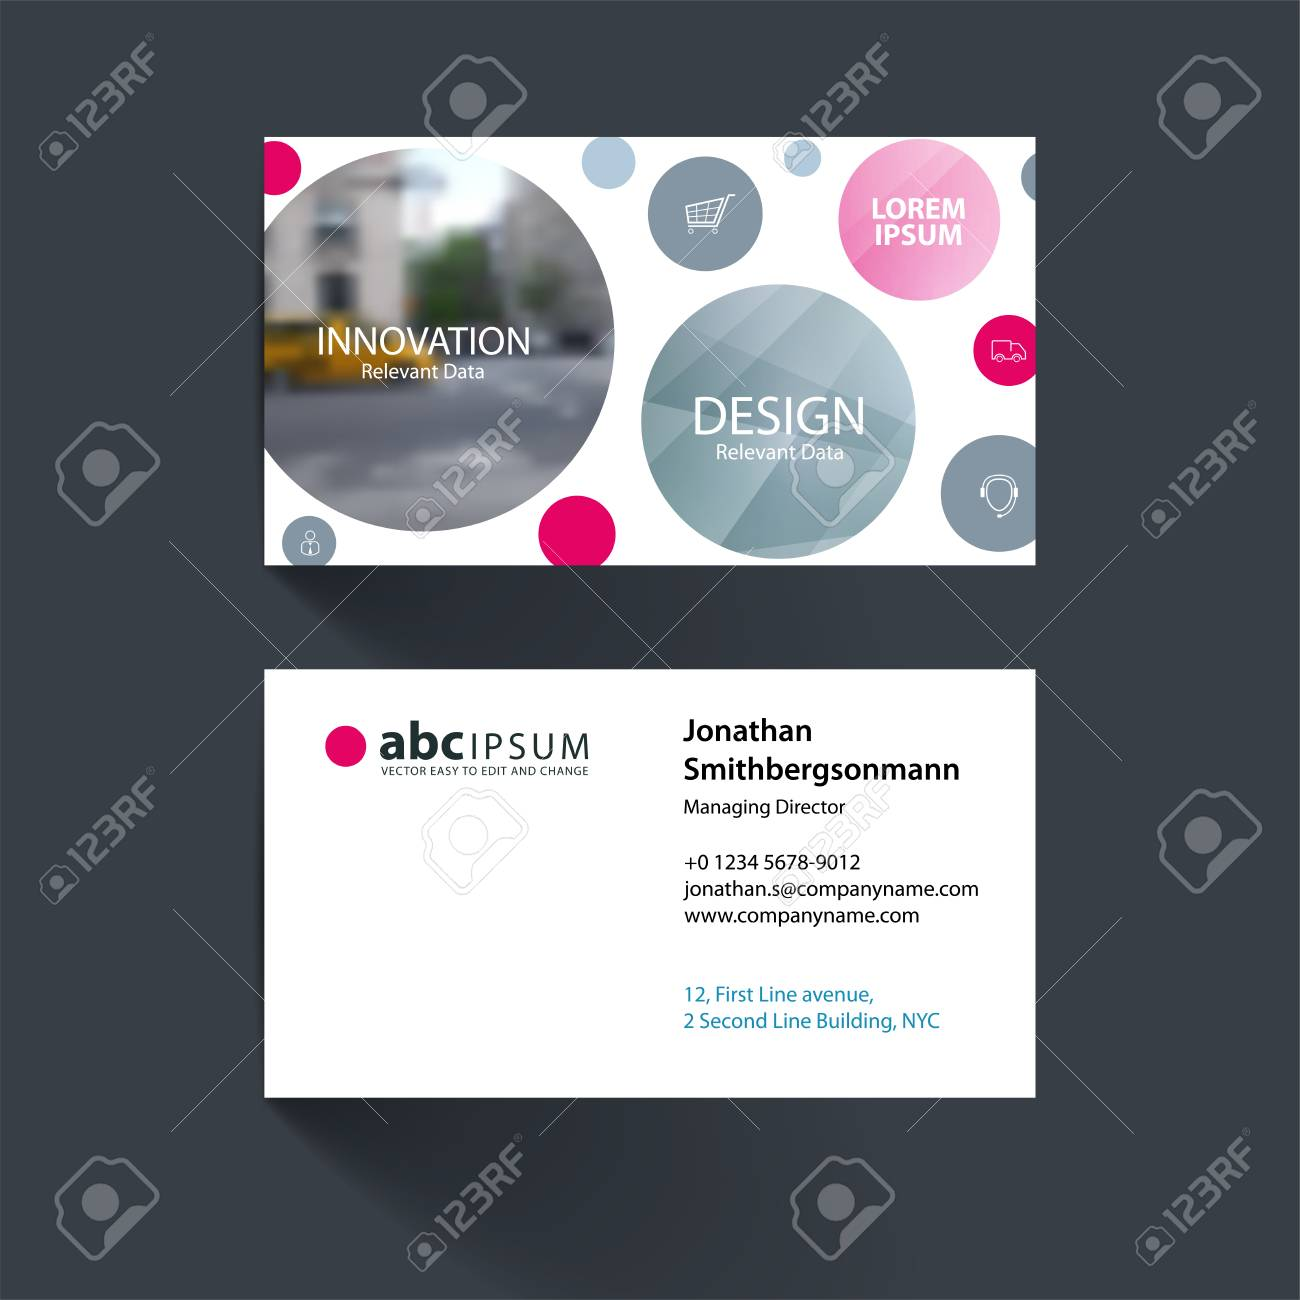 Business Card Template With Points Circles Dots For IT, Business ...